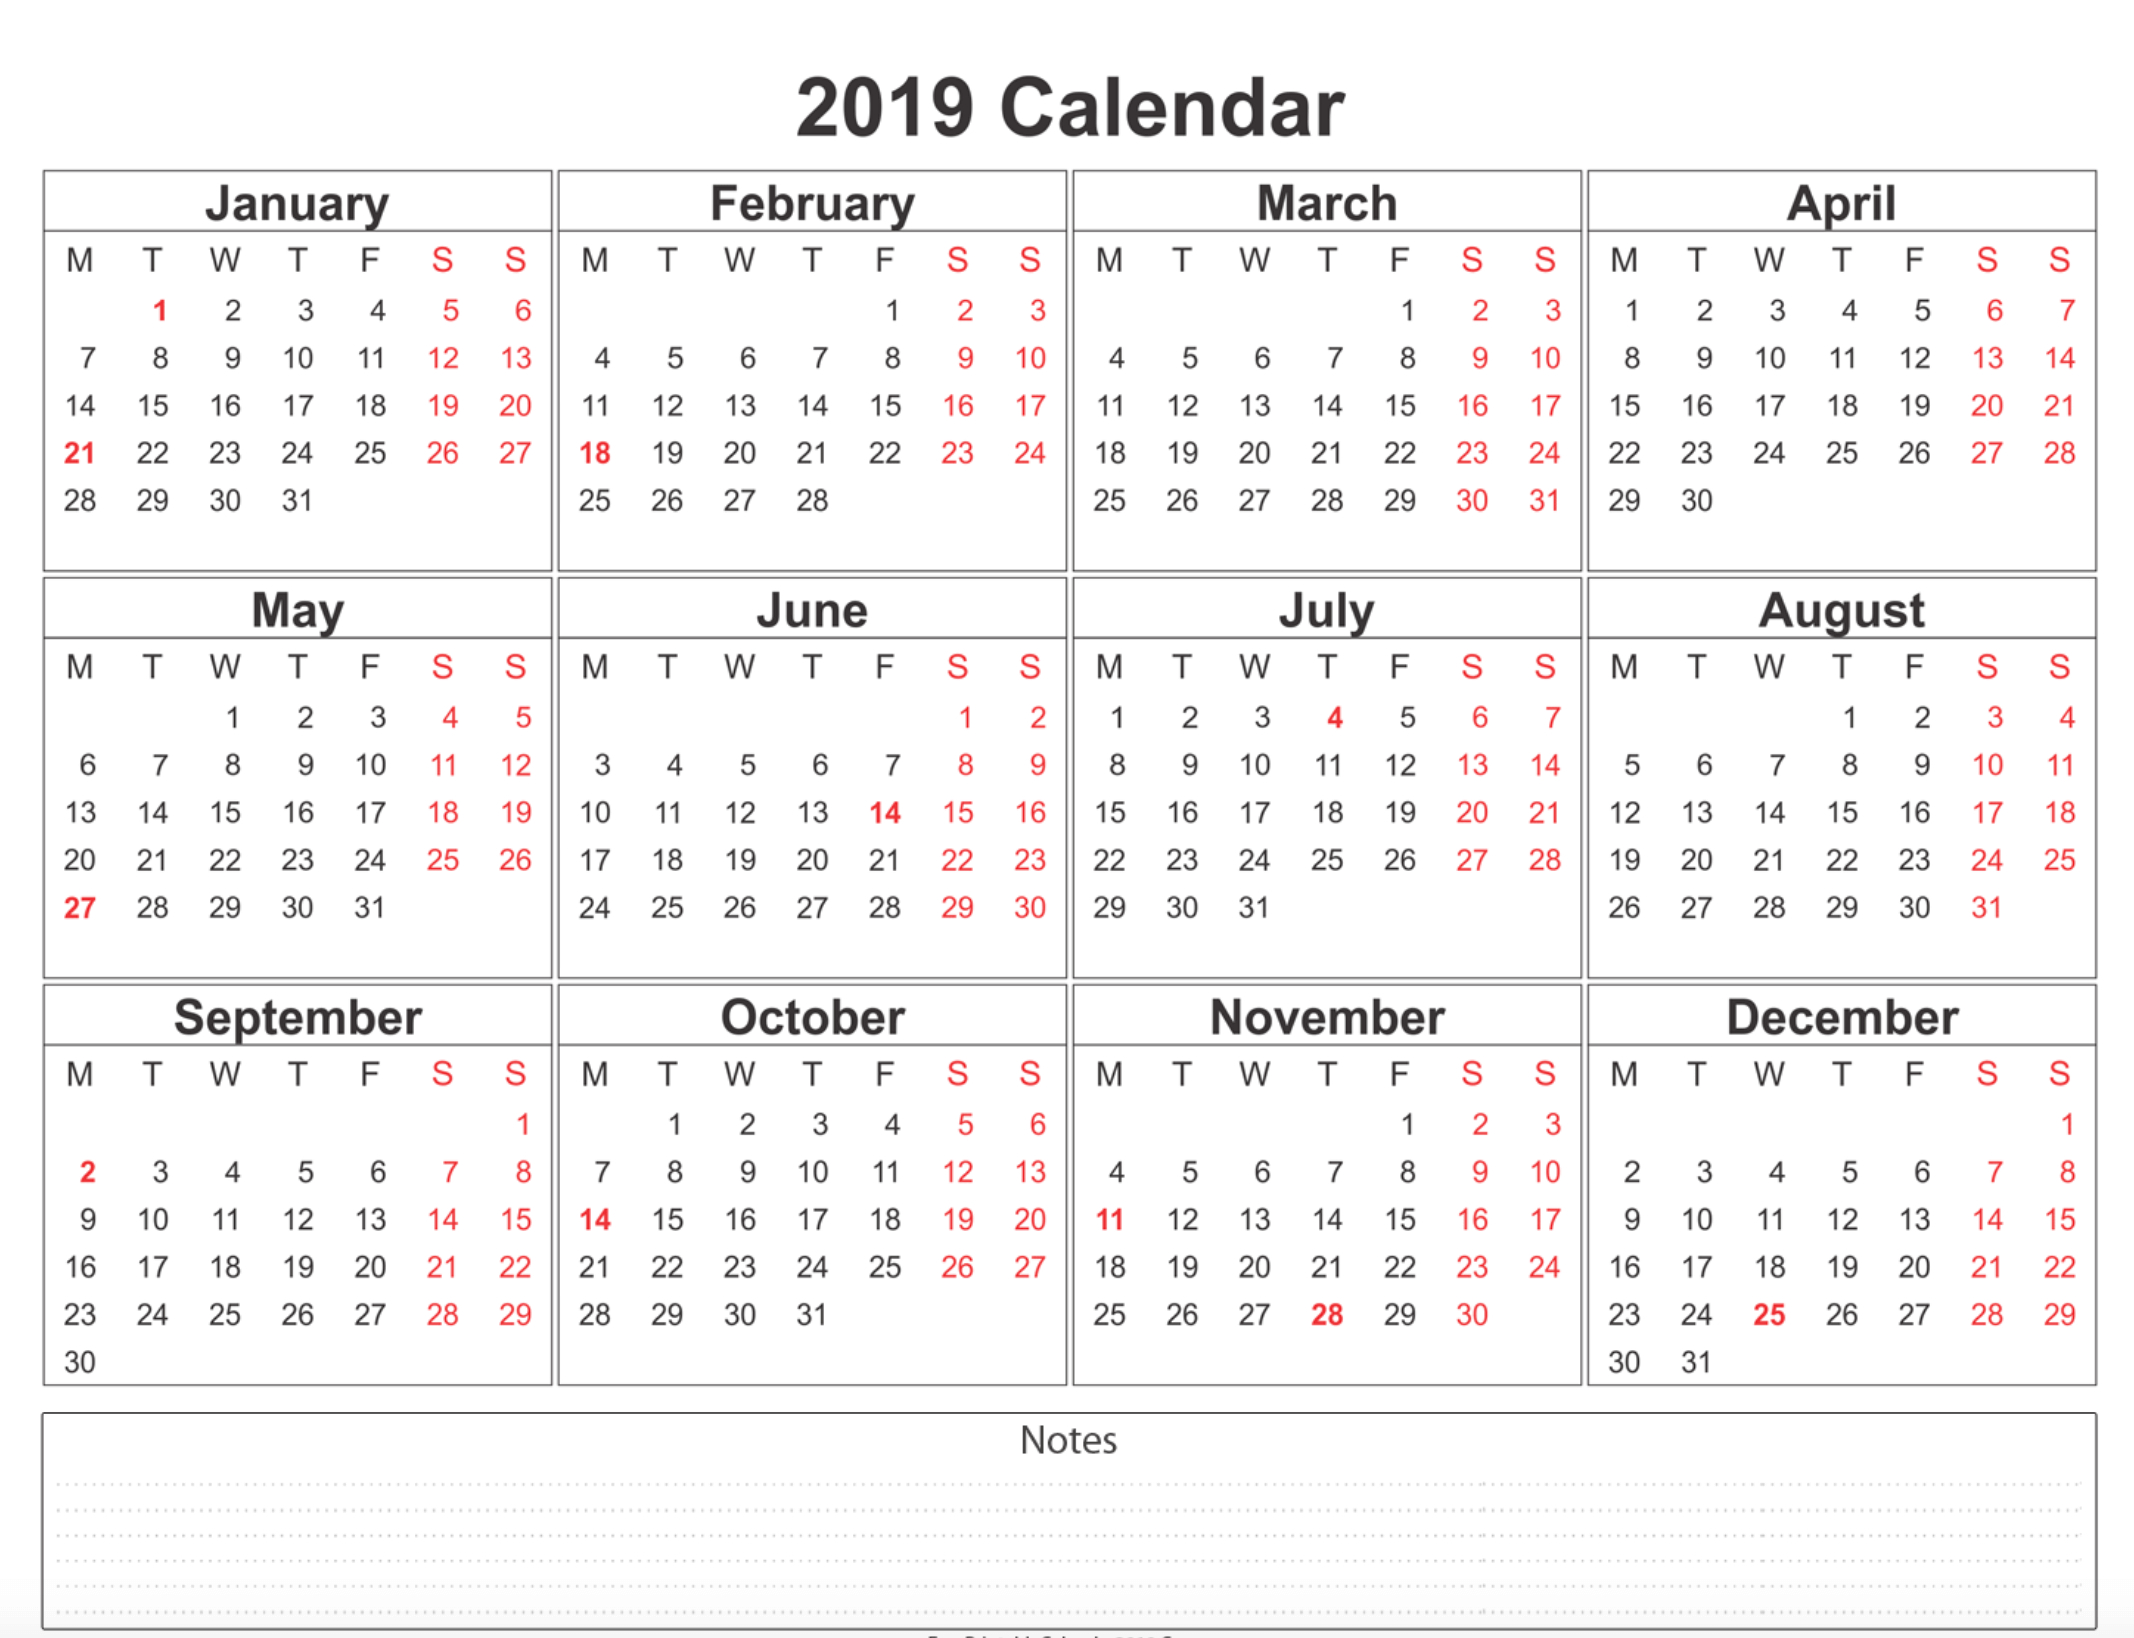 Free Blank Printable Calendar 2019 With Holidays Template Word pertaining to Printable Blank 12 Week Calendar Template